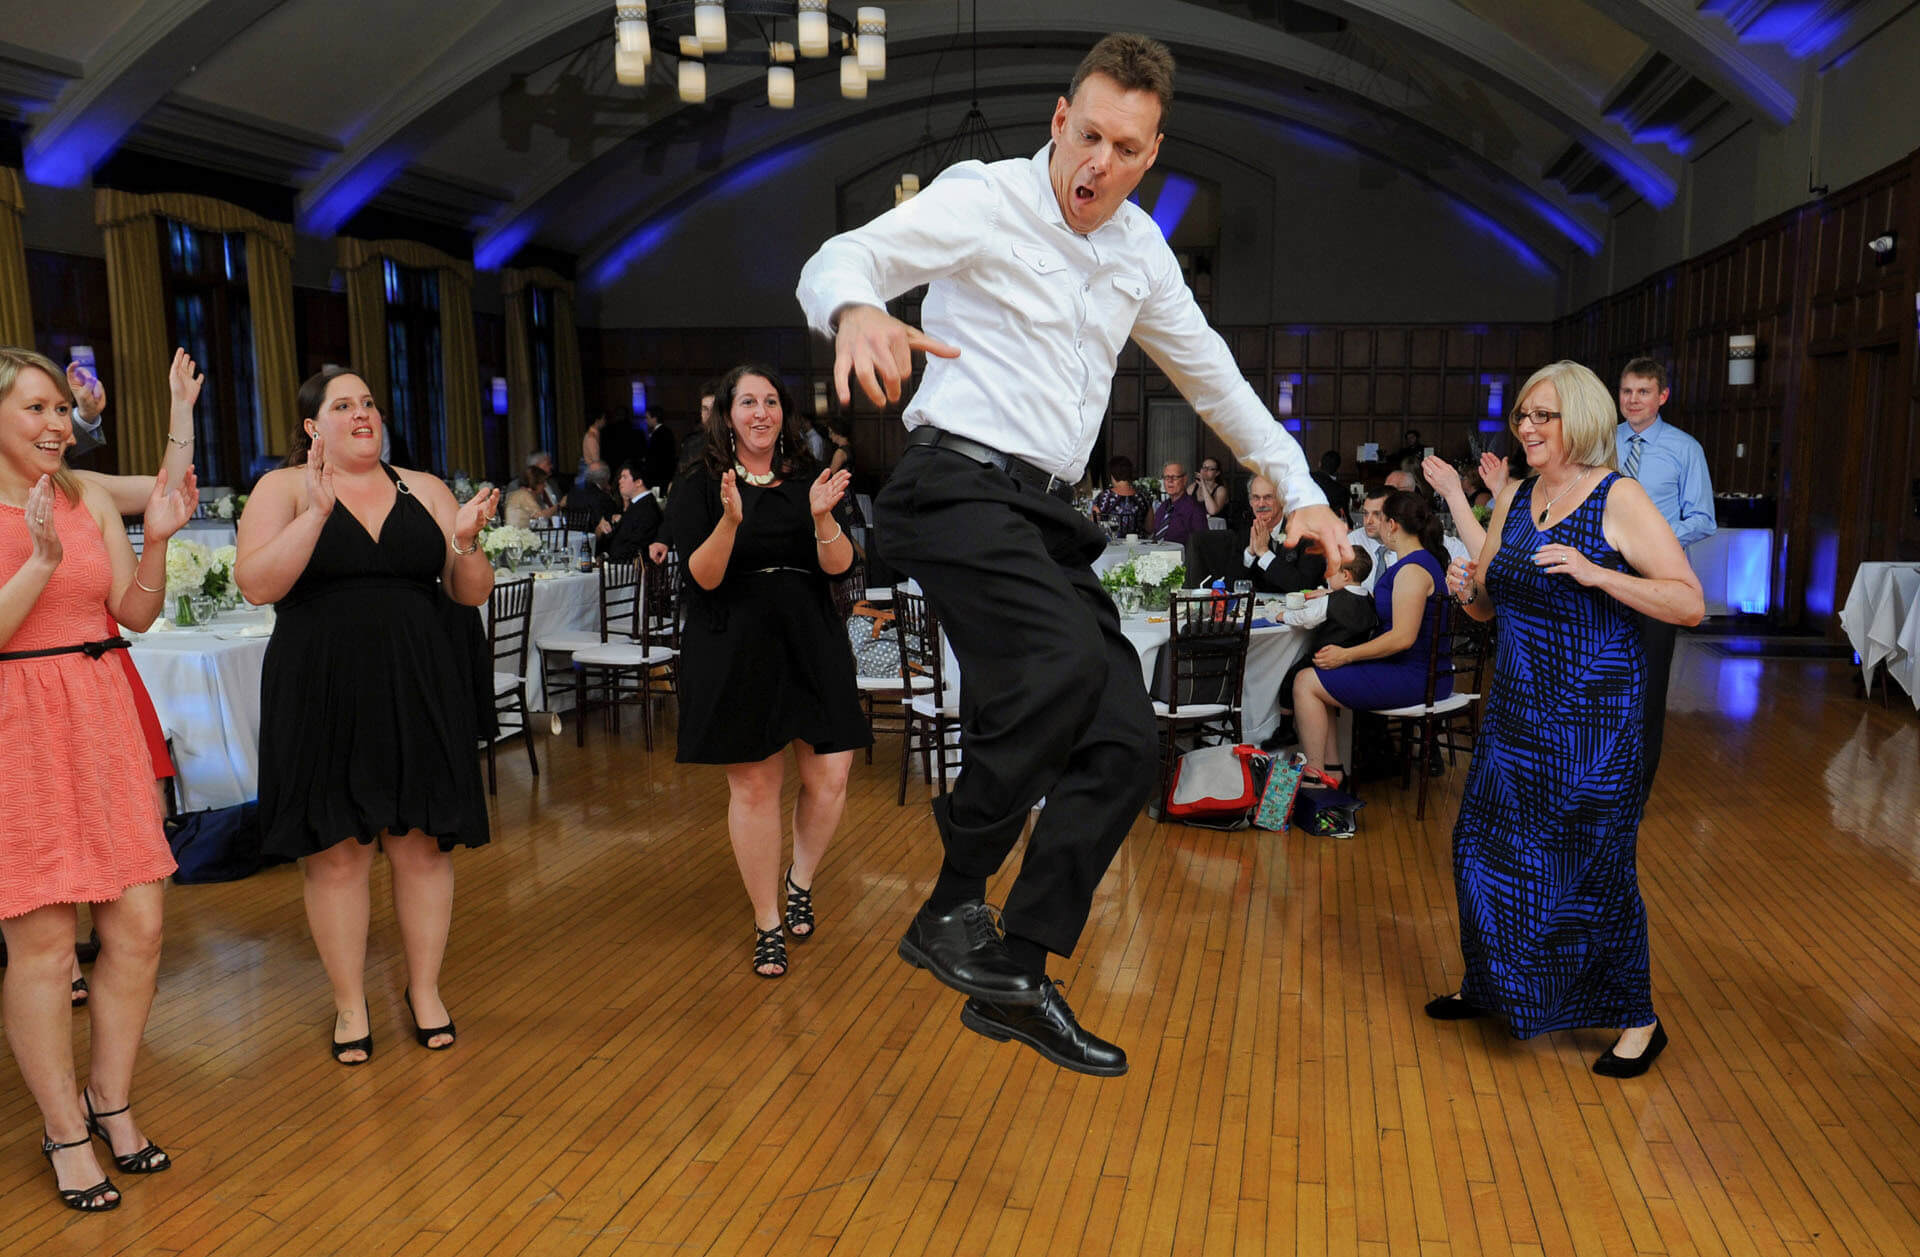 The bride's uncle cuts loose on the dance floor of this Ann Arbor, Michigan wedding taking place at the Michigan League in Ann Arbor, Michigan.